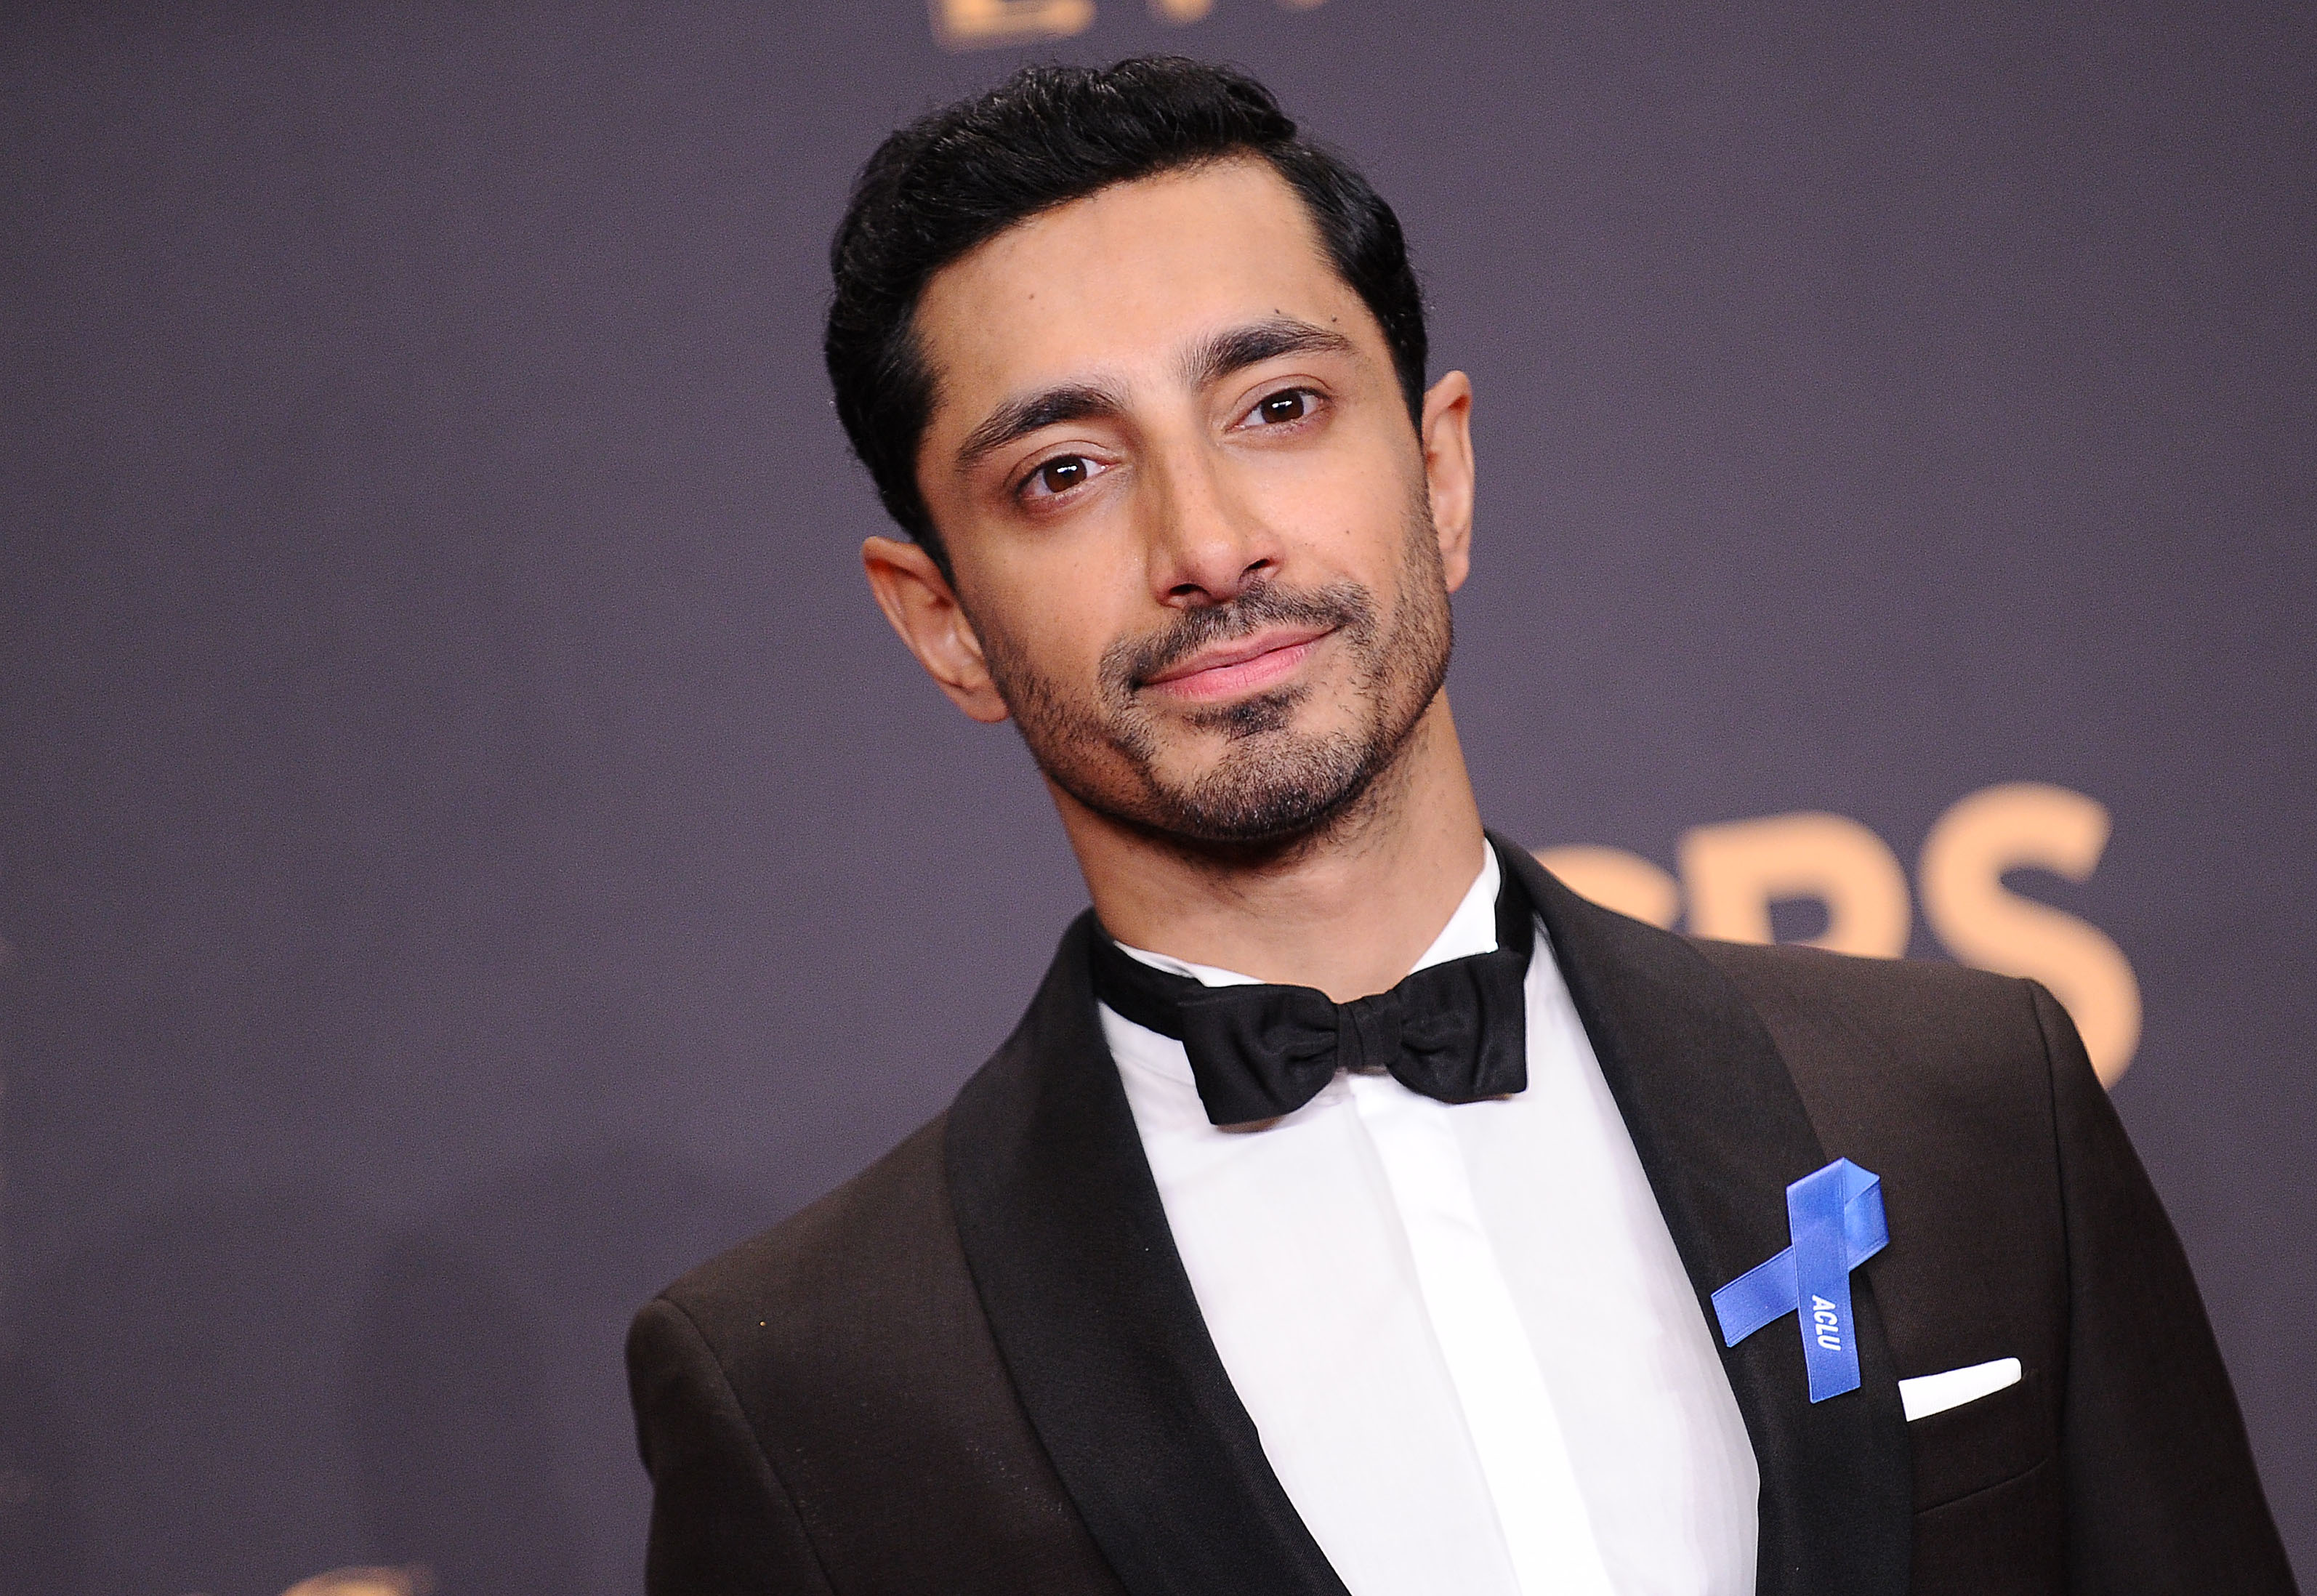 Riz Ahmed poses at the Emmy Awards. he wears a bowtie and a blue ribbon.